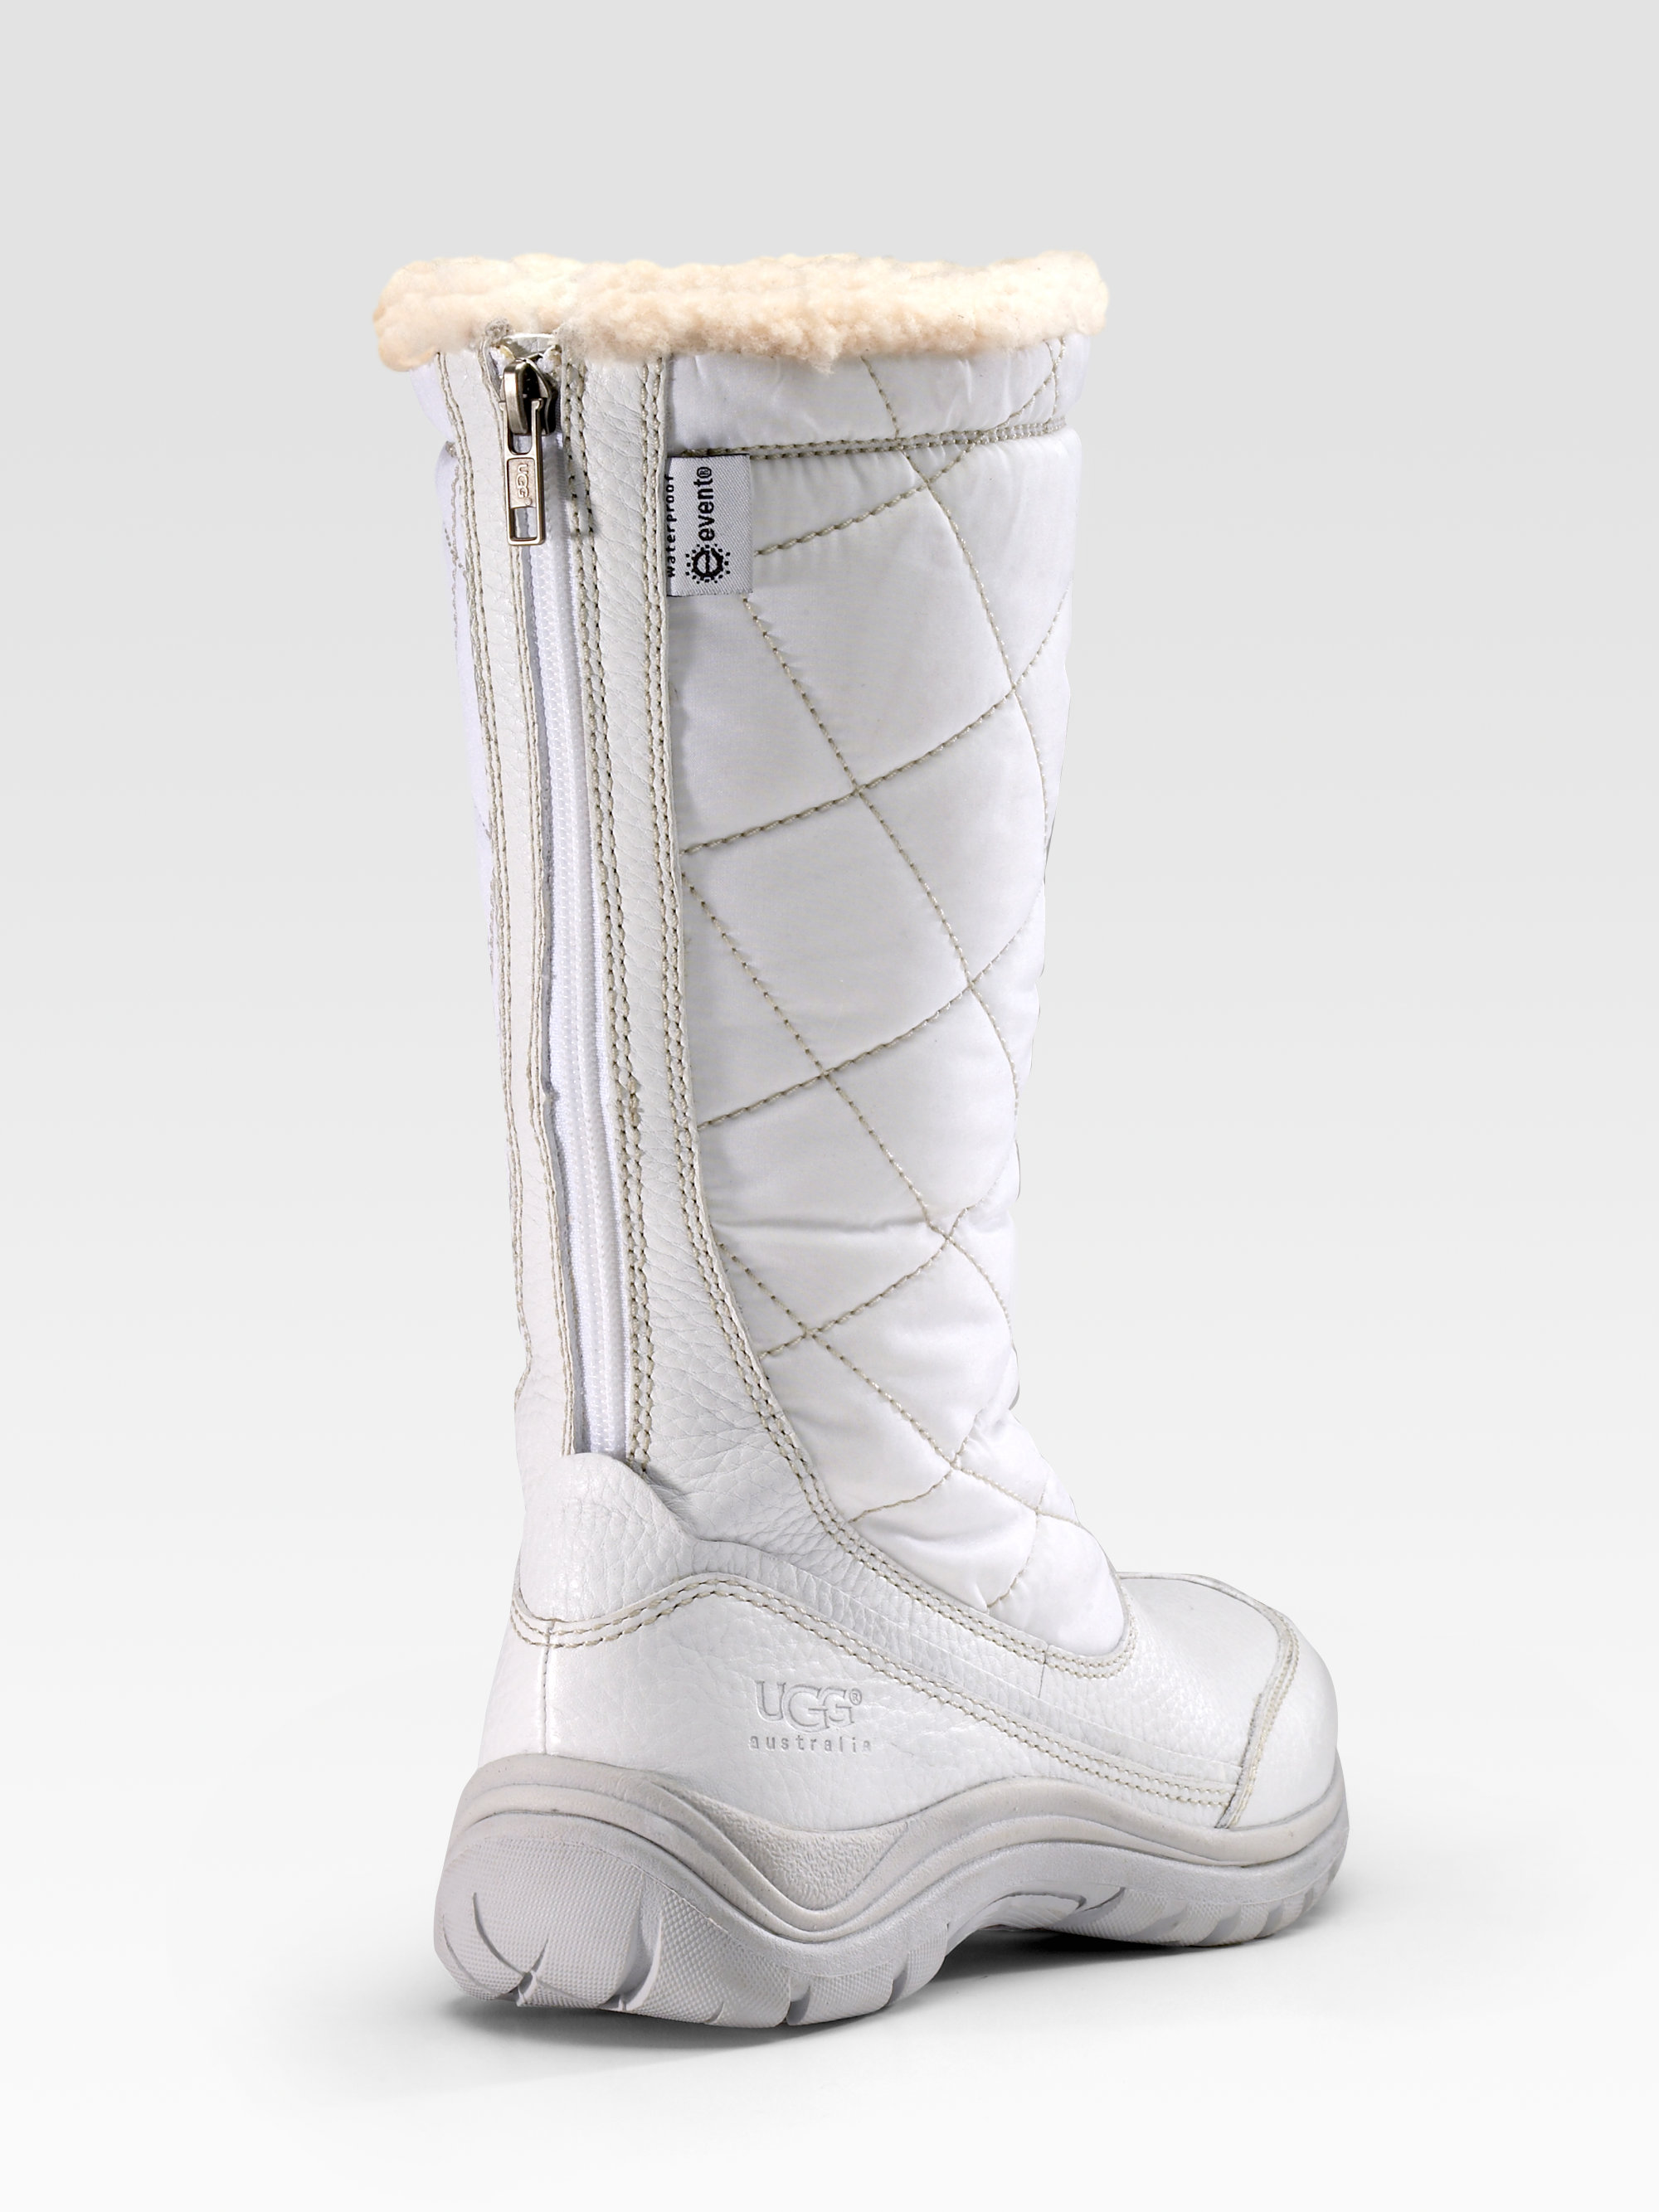 Ugg Quilted Nylon Tall Boots In White Lyst